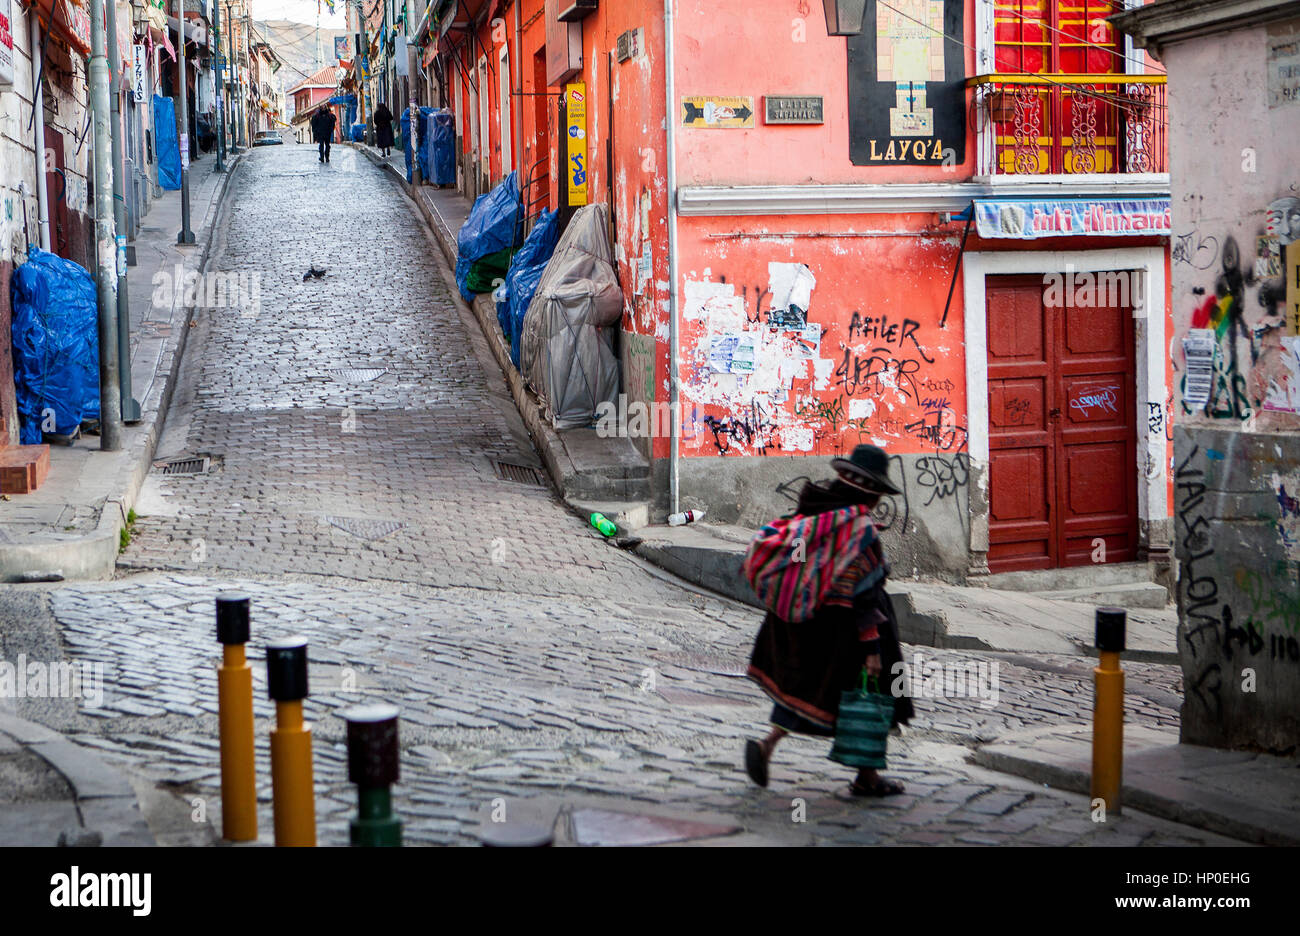 2b19b238275d Calle Linares Stock Photos   Calle Linares Stock Images - Alamy